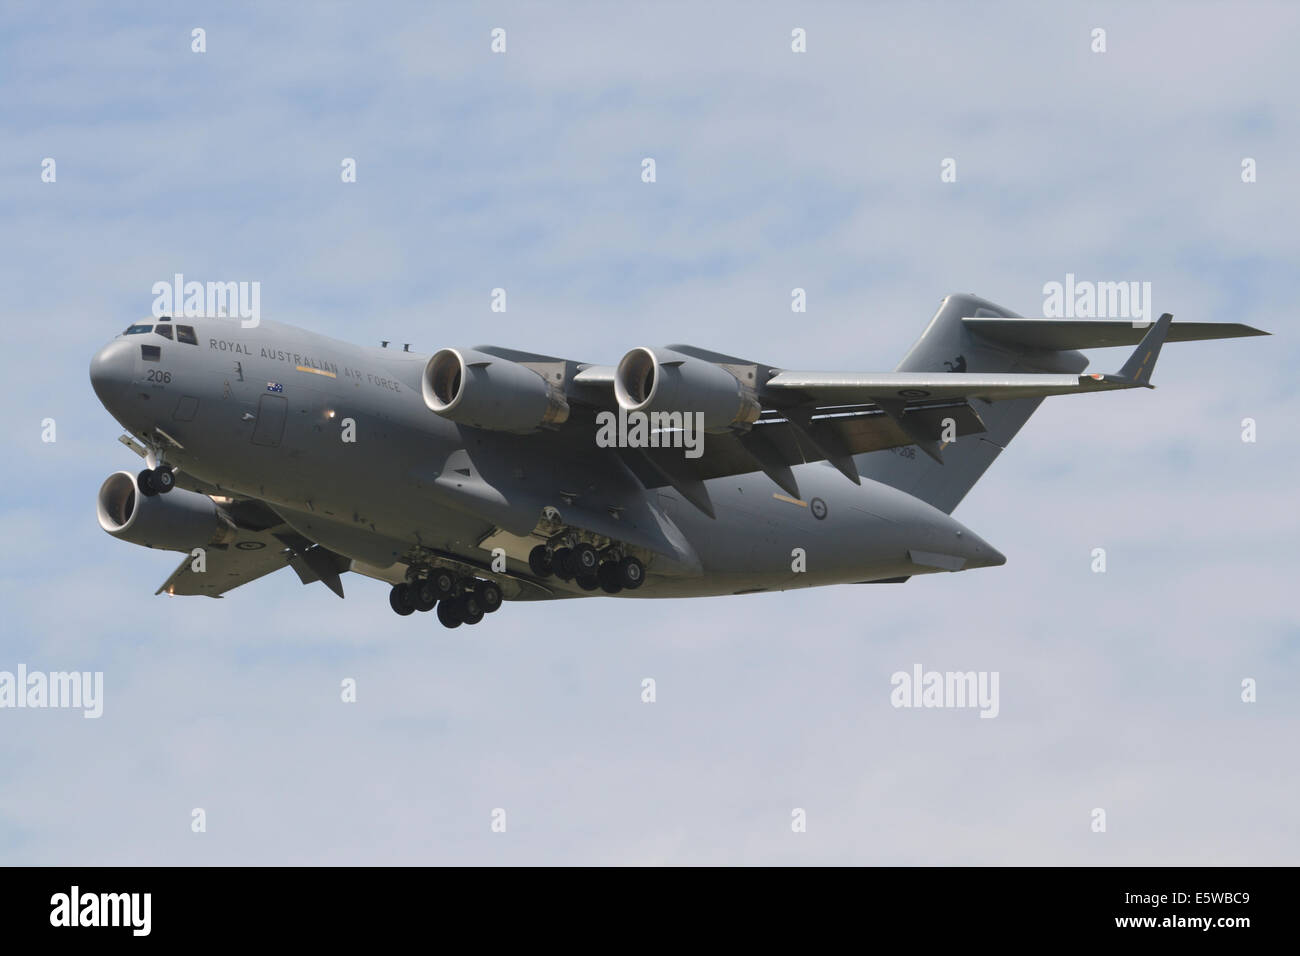 A RAAF C-17 transport aircraft on final approach to landing. - Stock Image